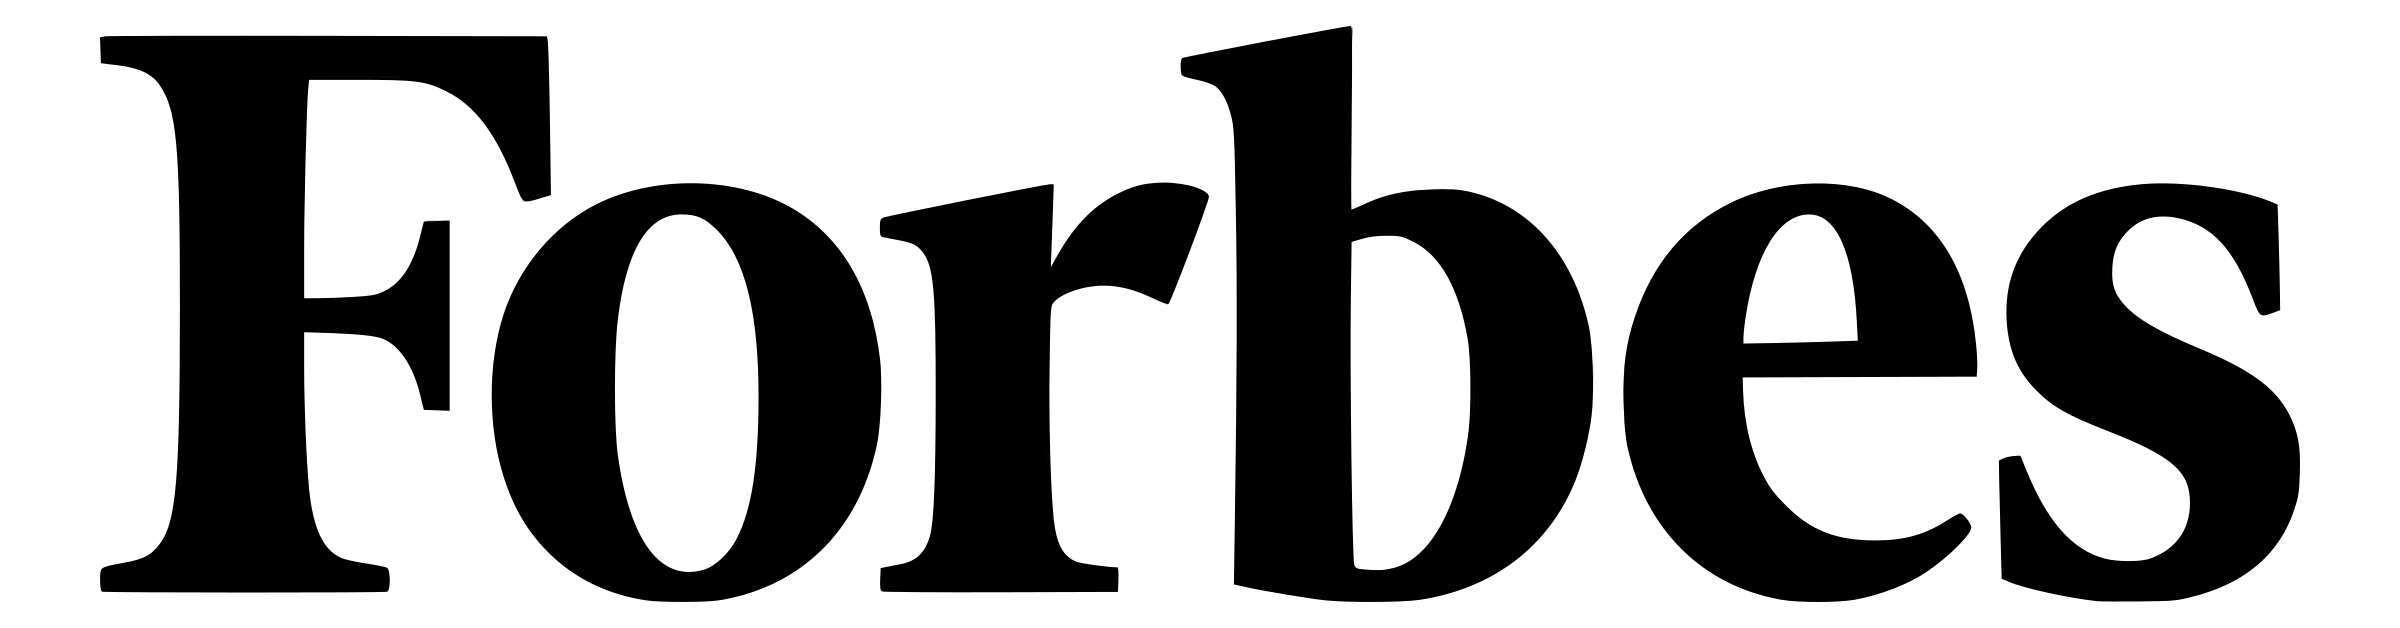 forbes-logo-black-transparent (1).png